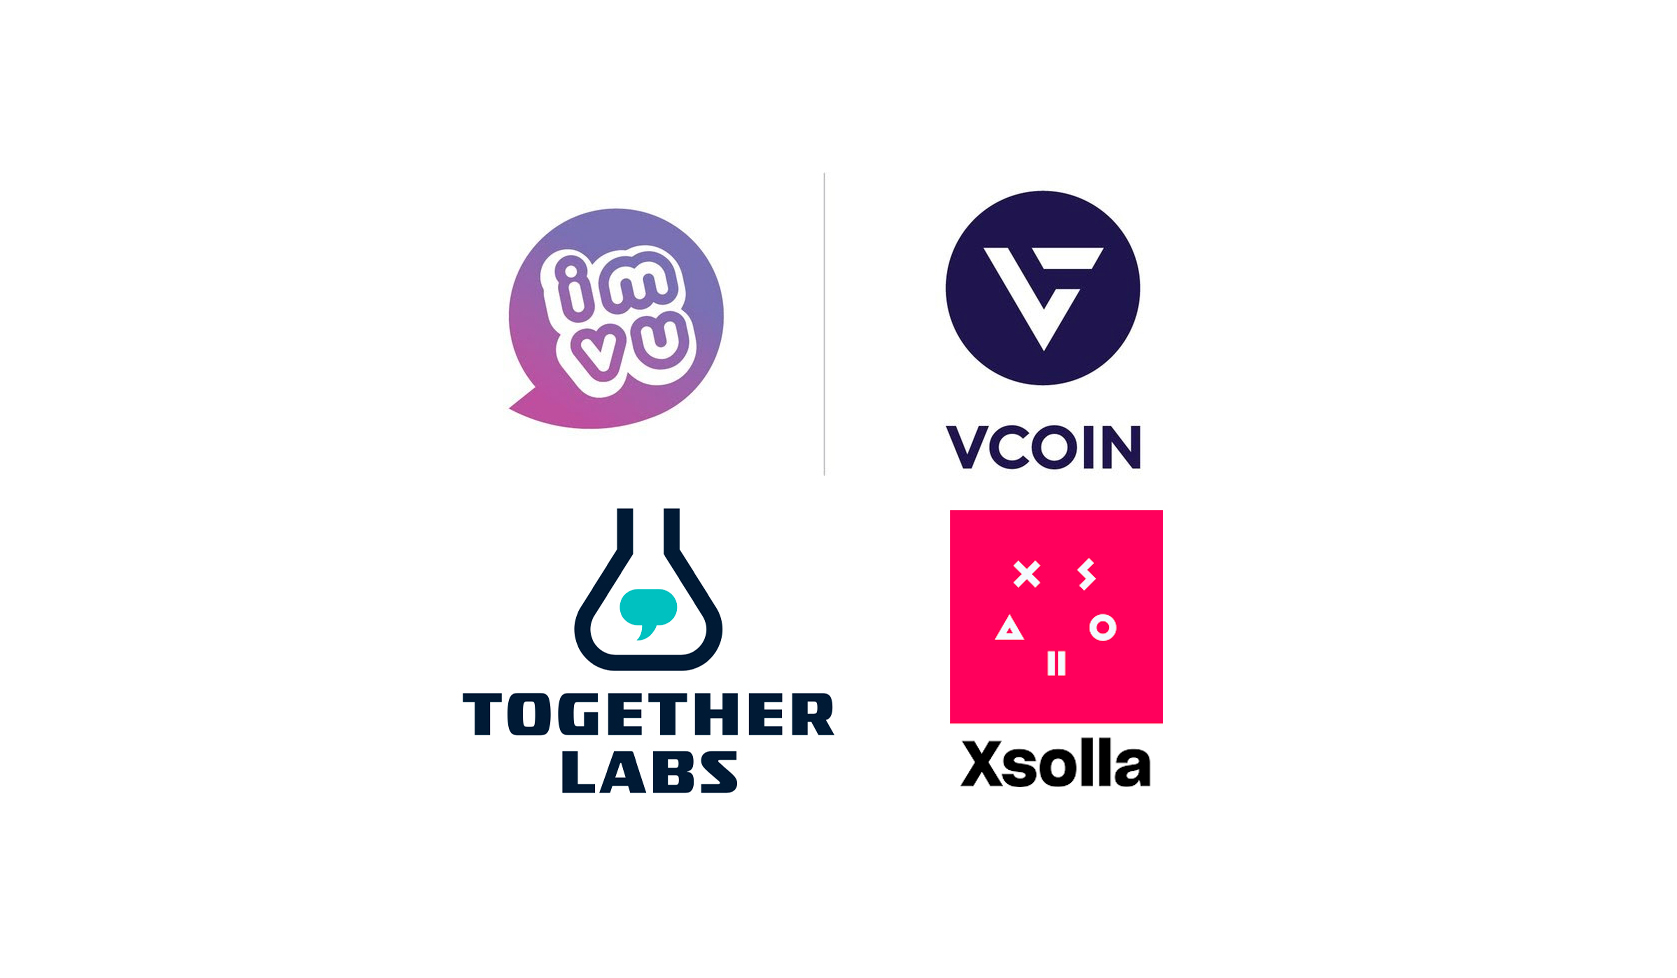 Xsolla to Partner with IMVU's VCOIN to Expand Usability and Support the Metaverse for All Gamers and Creators